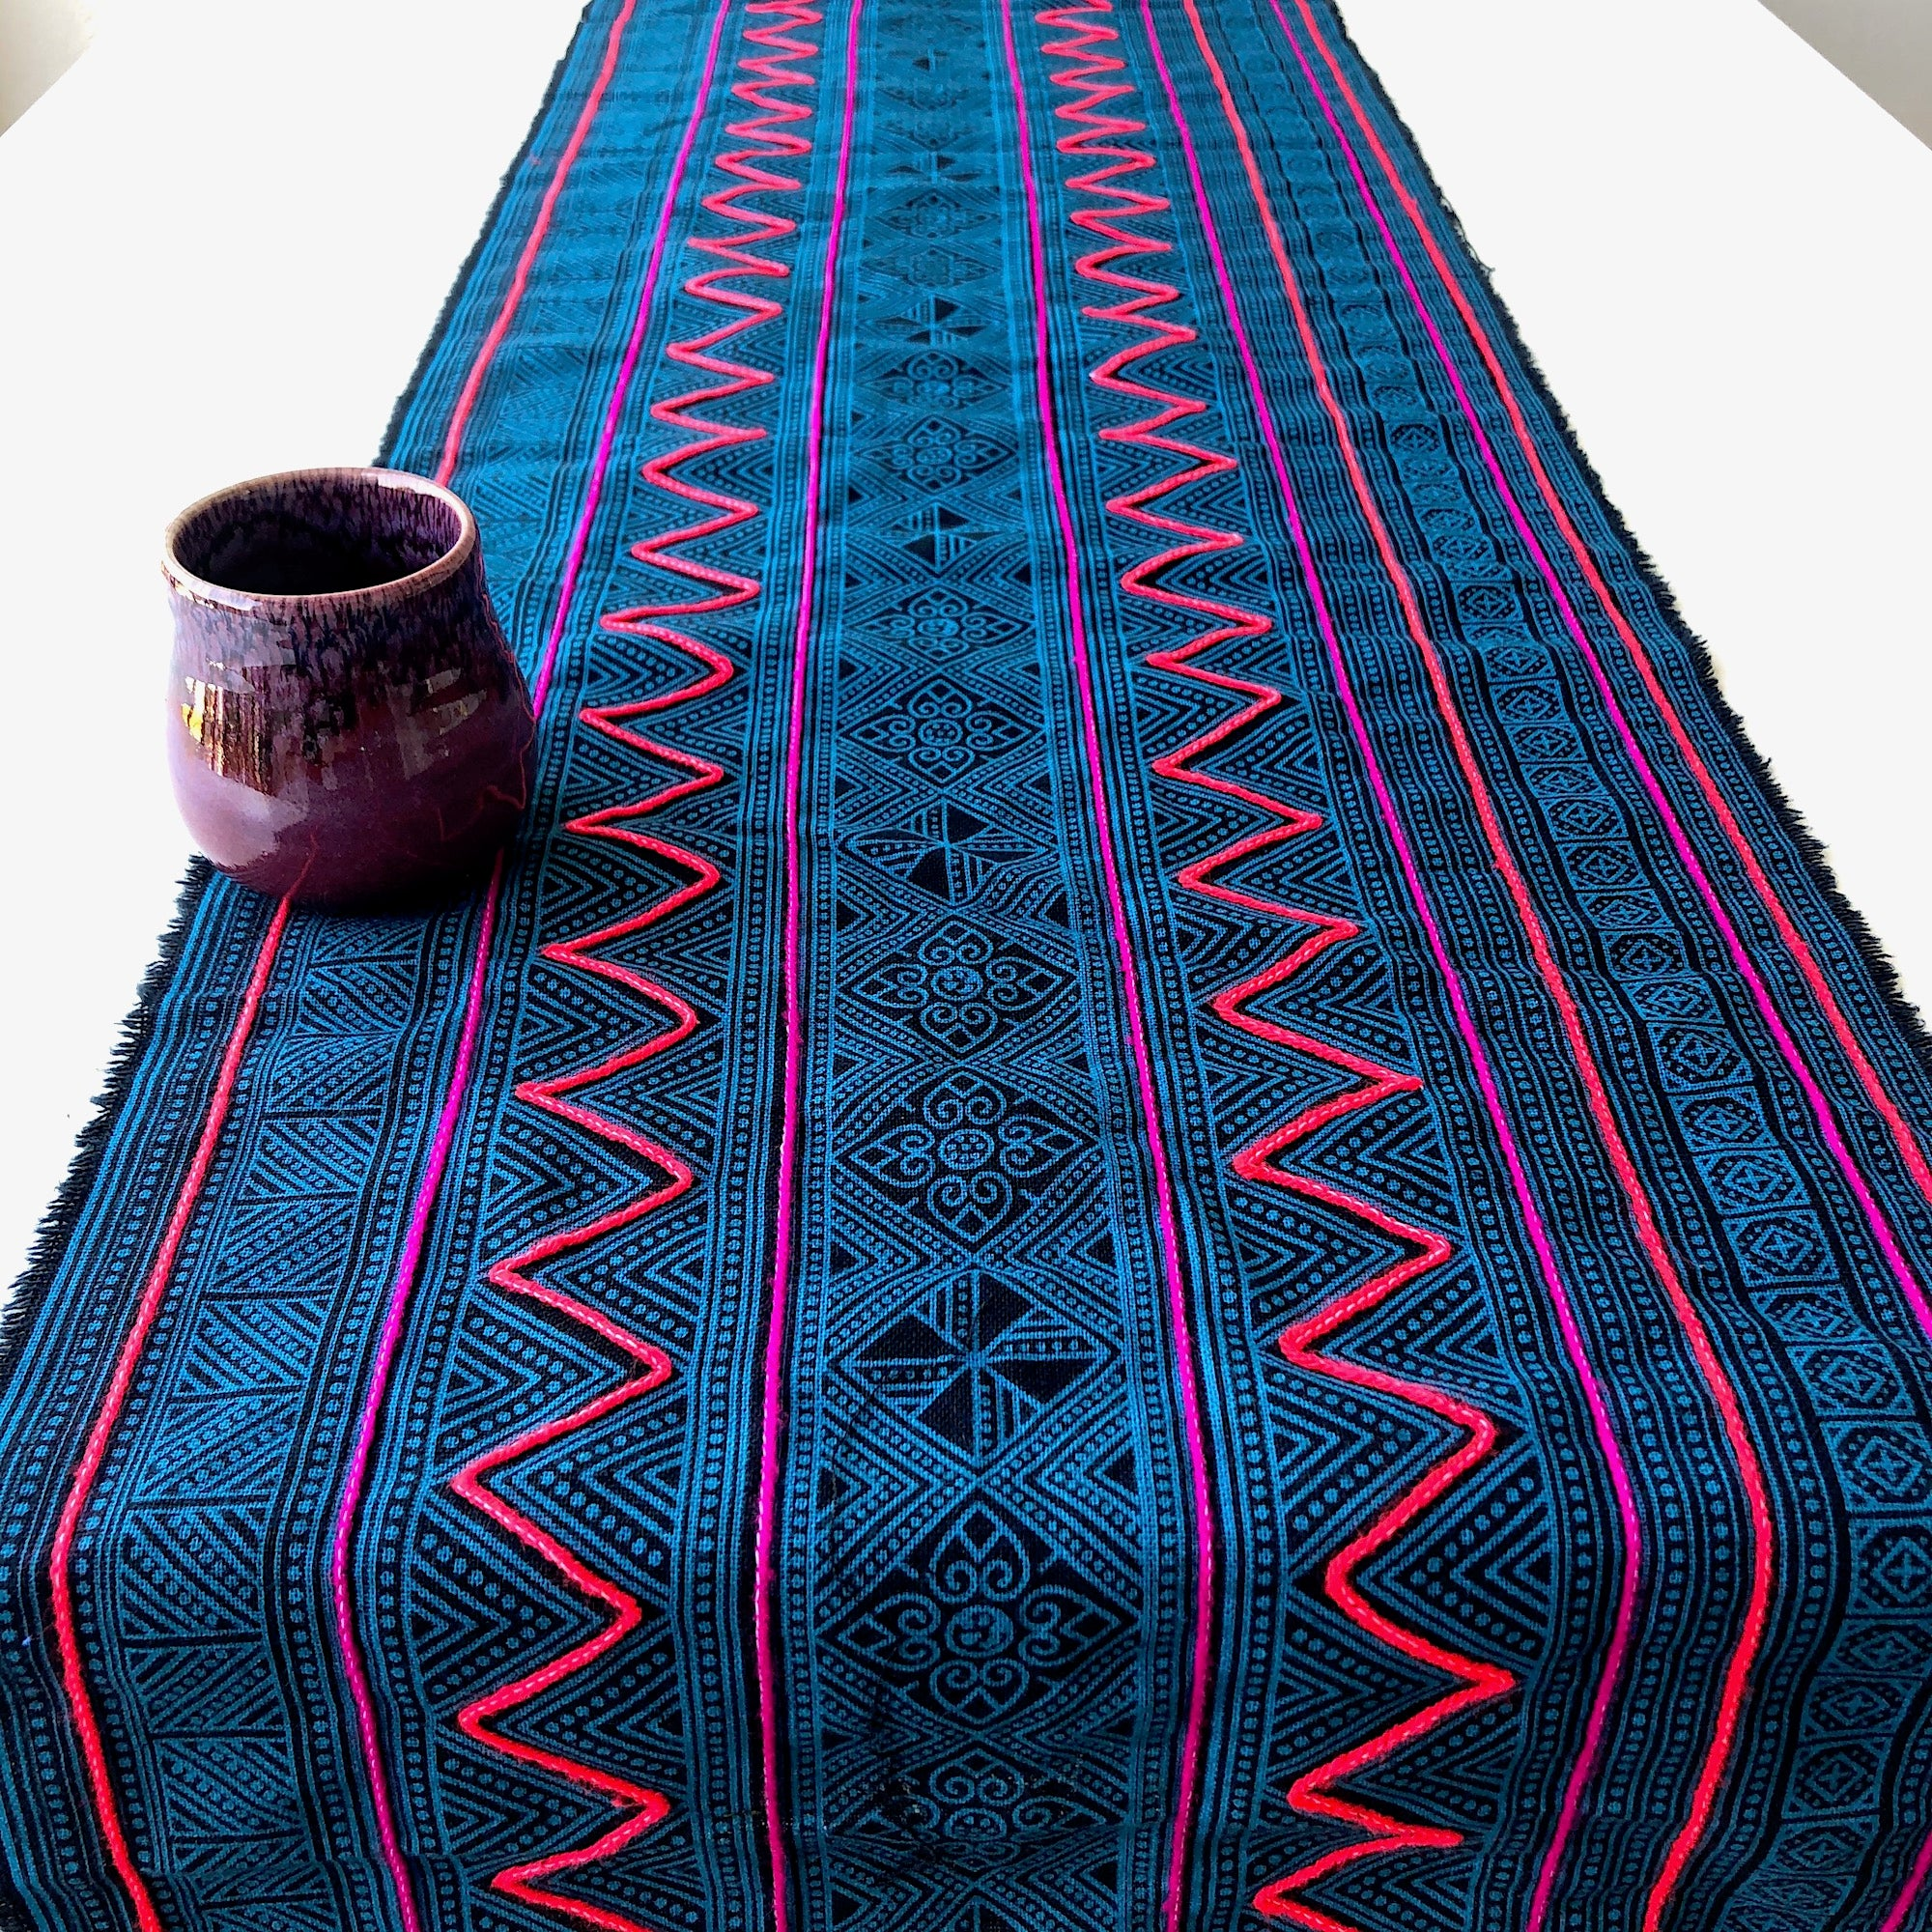 Hmong Decor Fabric Table Runner in Teal - 2.58 metres - Pallu Design